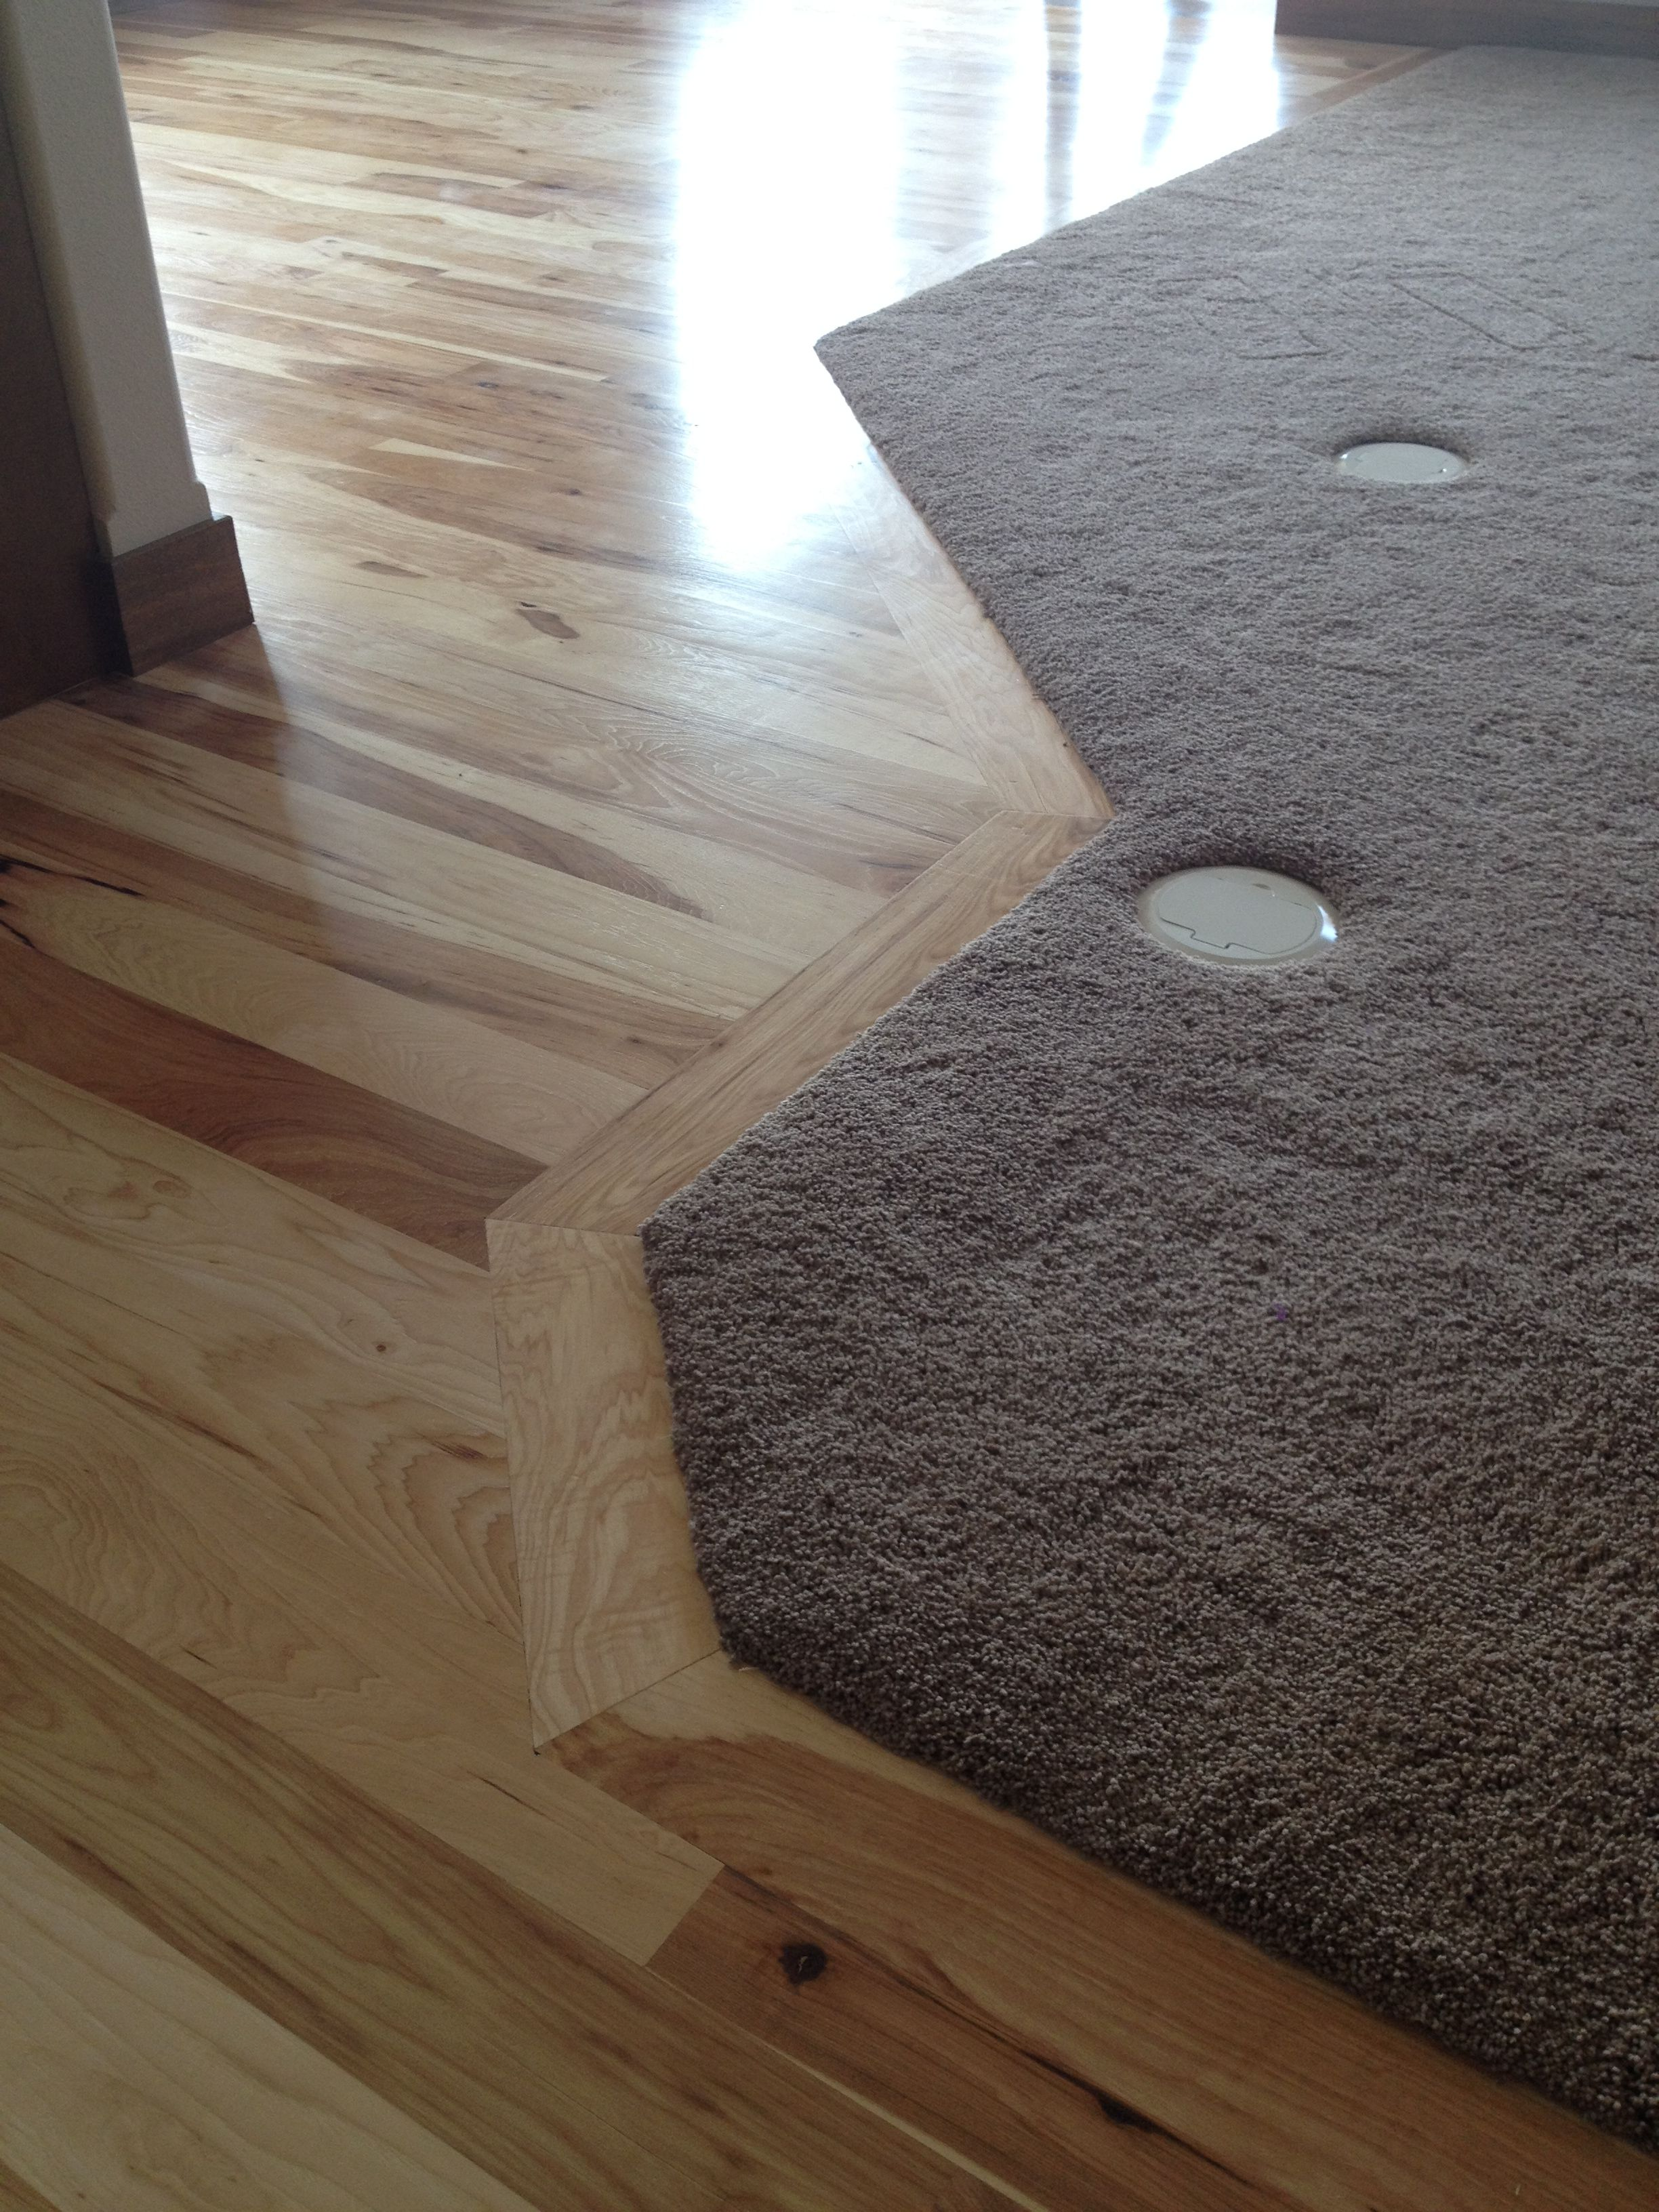 Living room carpet transition to hardwood in kitchen and